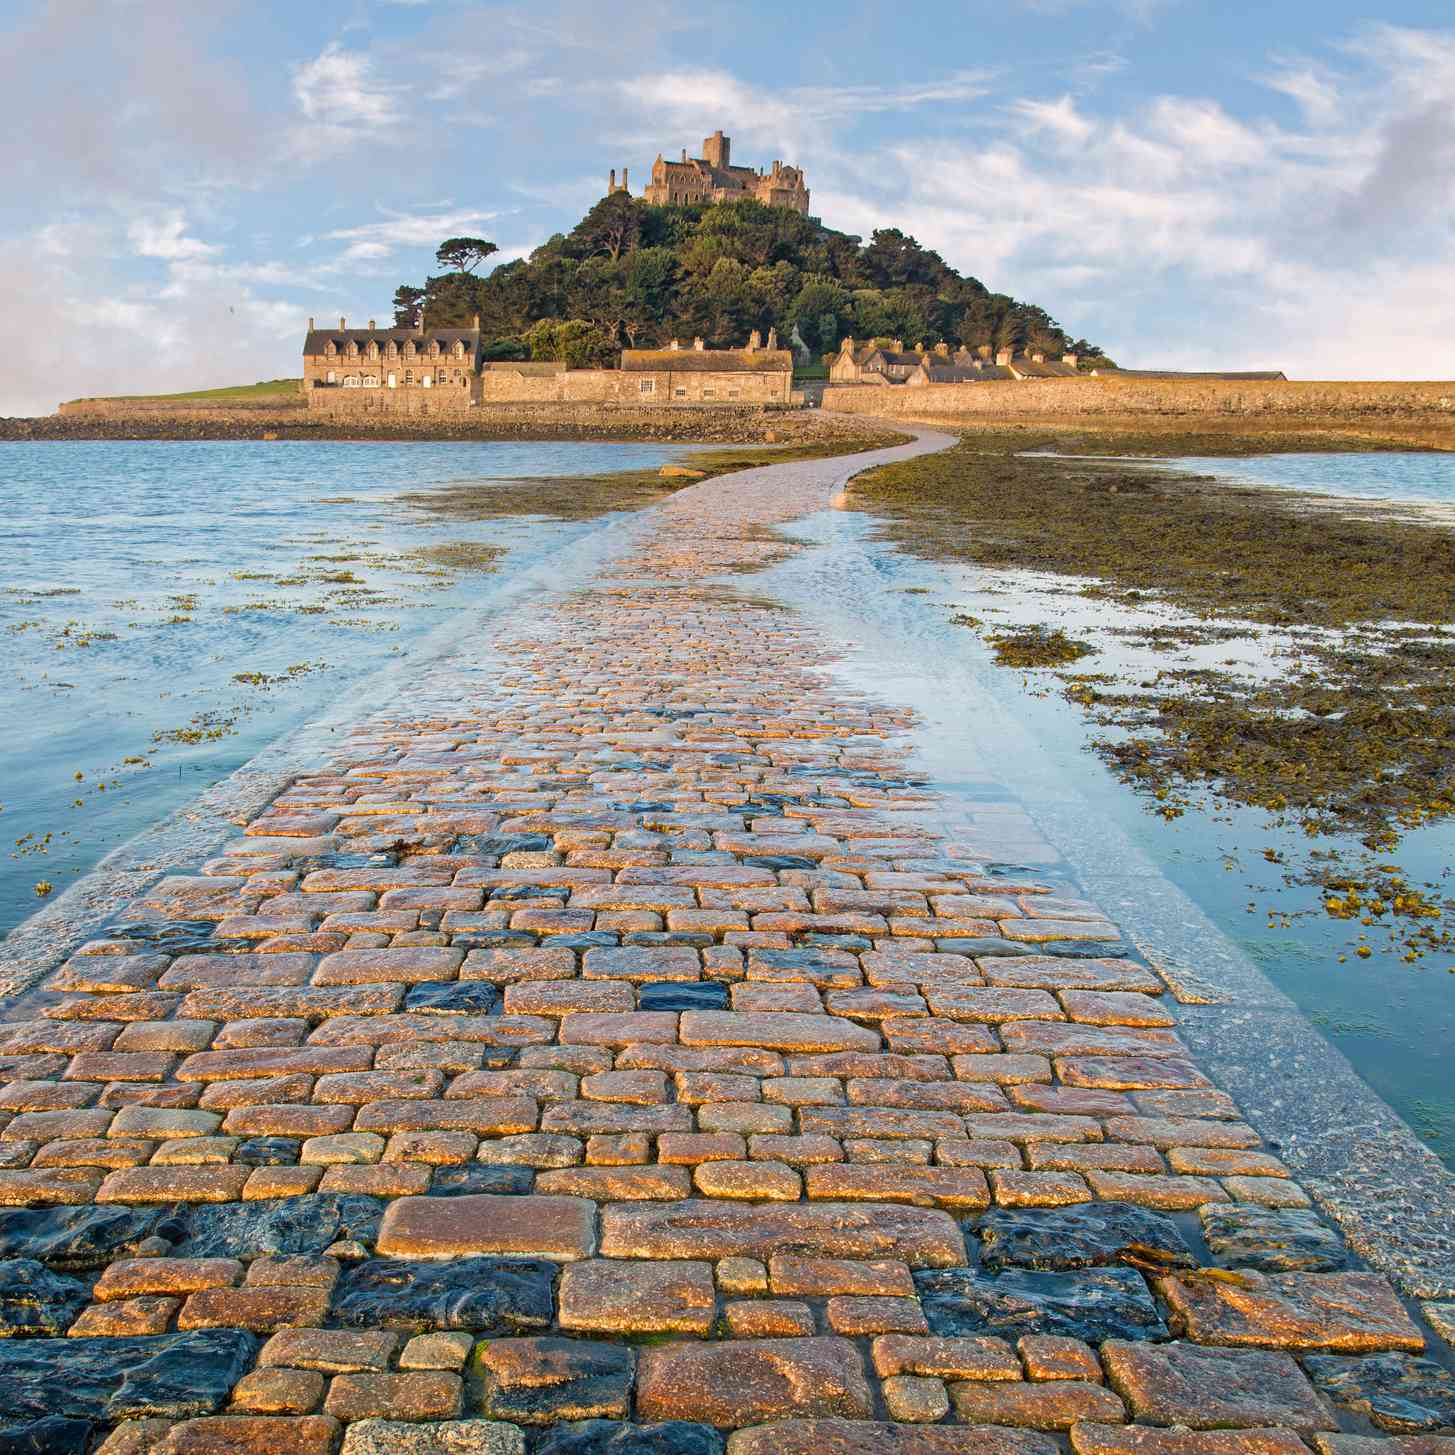 Causeway to castle on an island